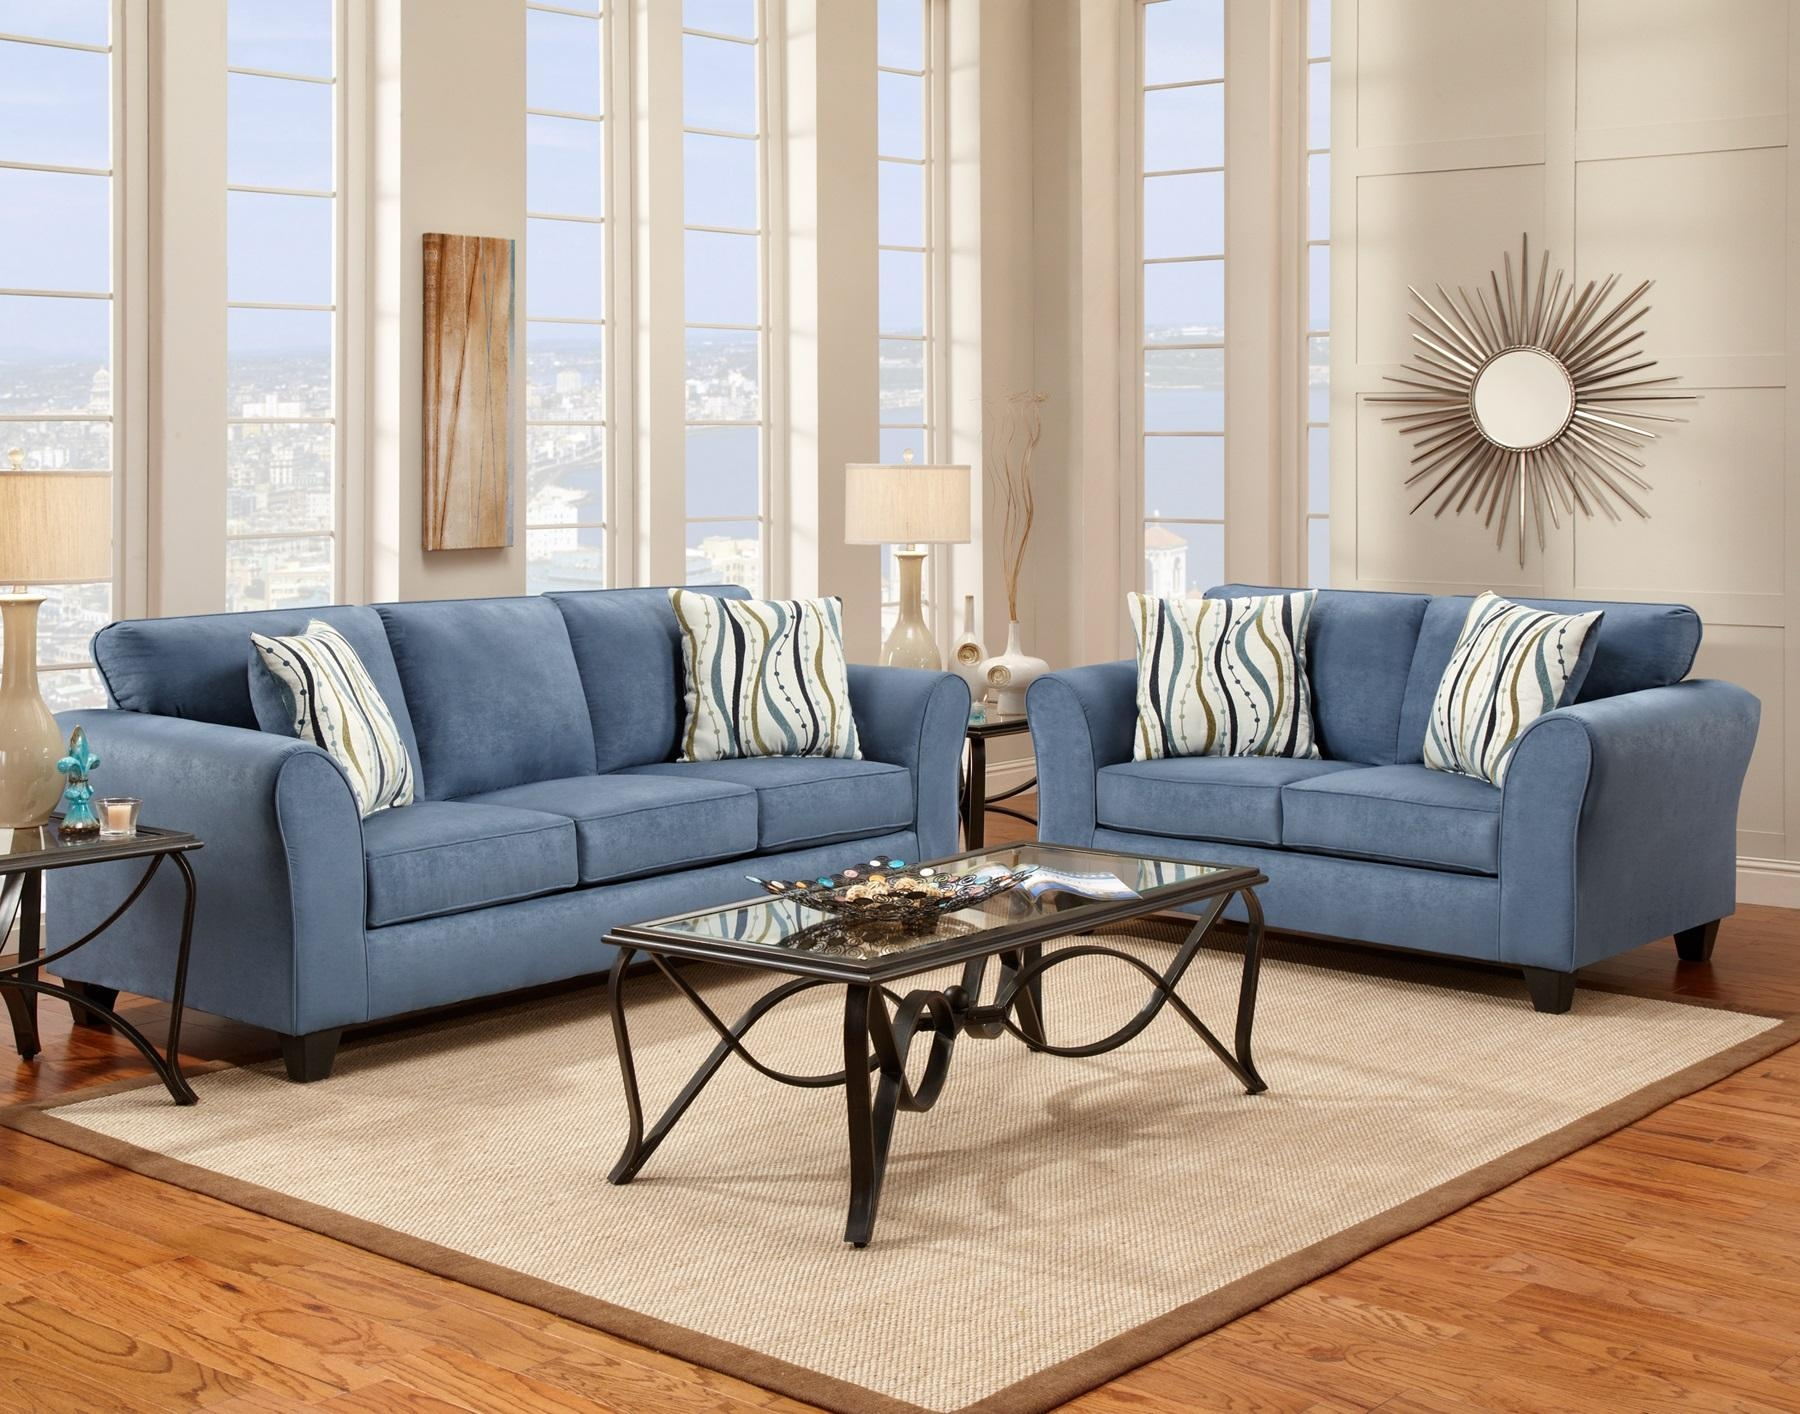 Roundhill Furniture Intended For Blue Microfiber Sofas (View 5 of 20)